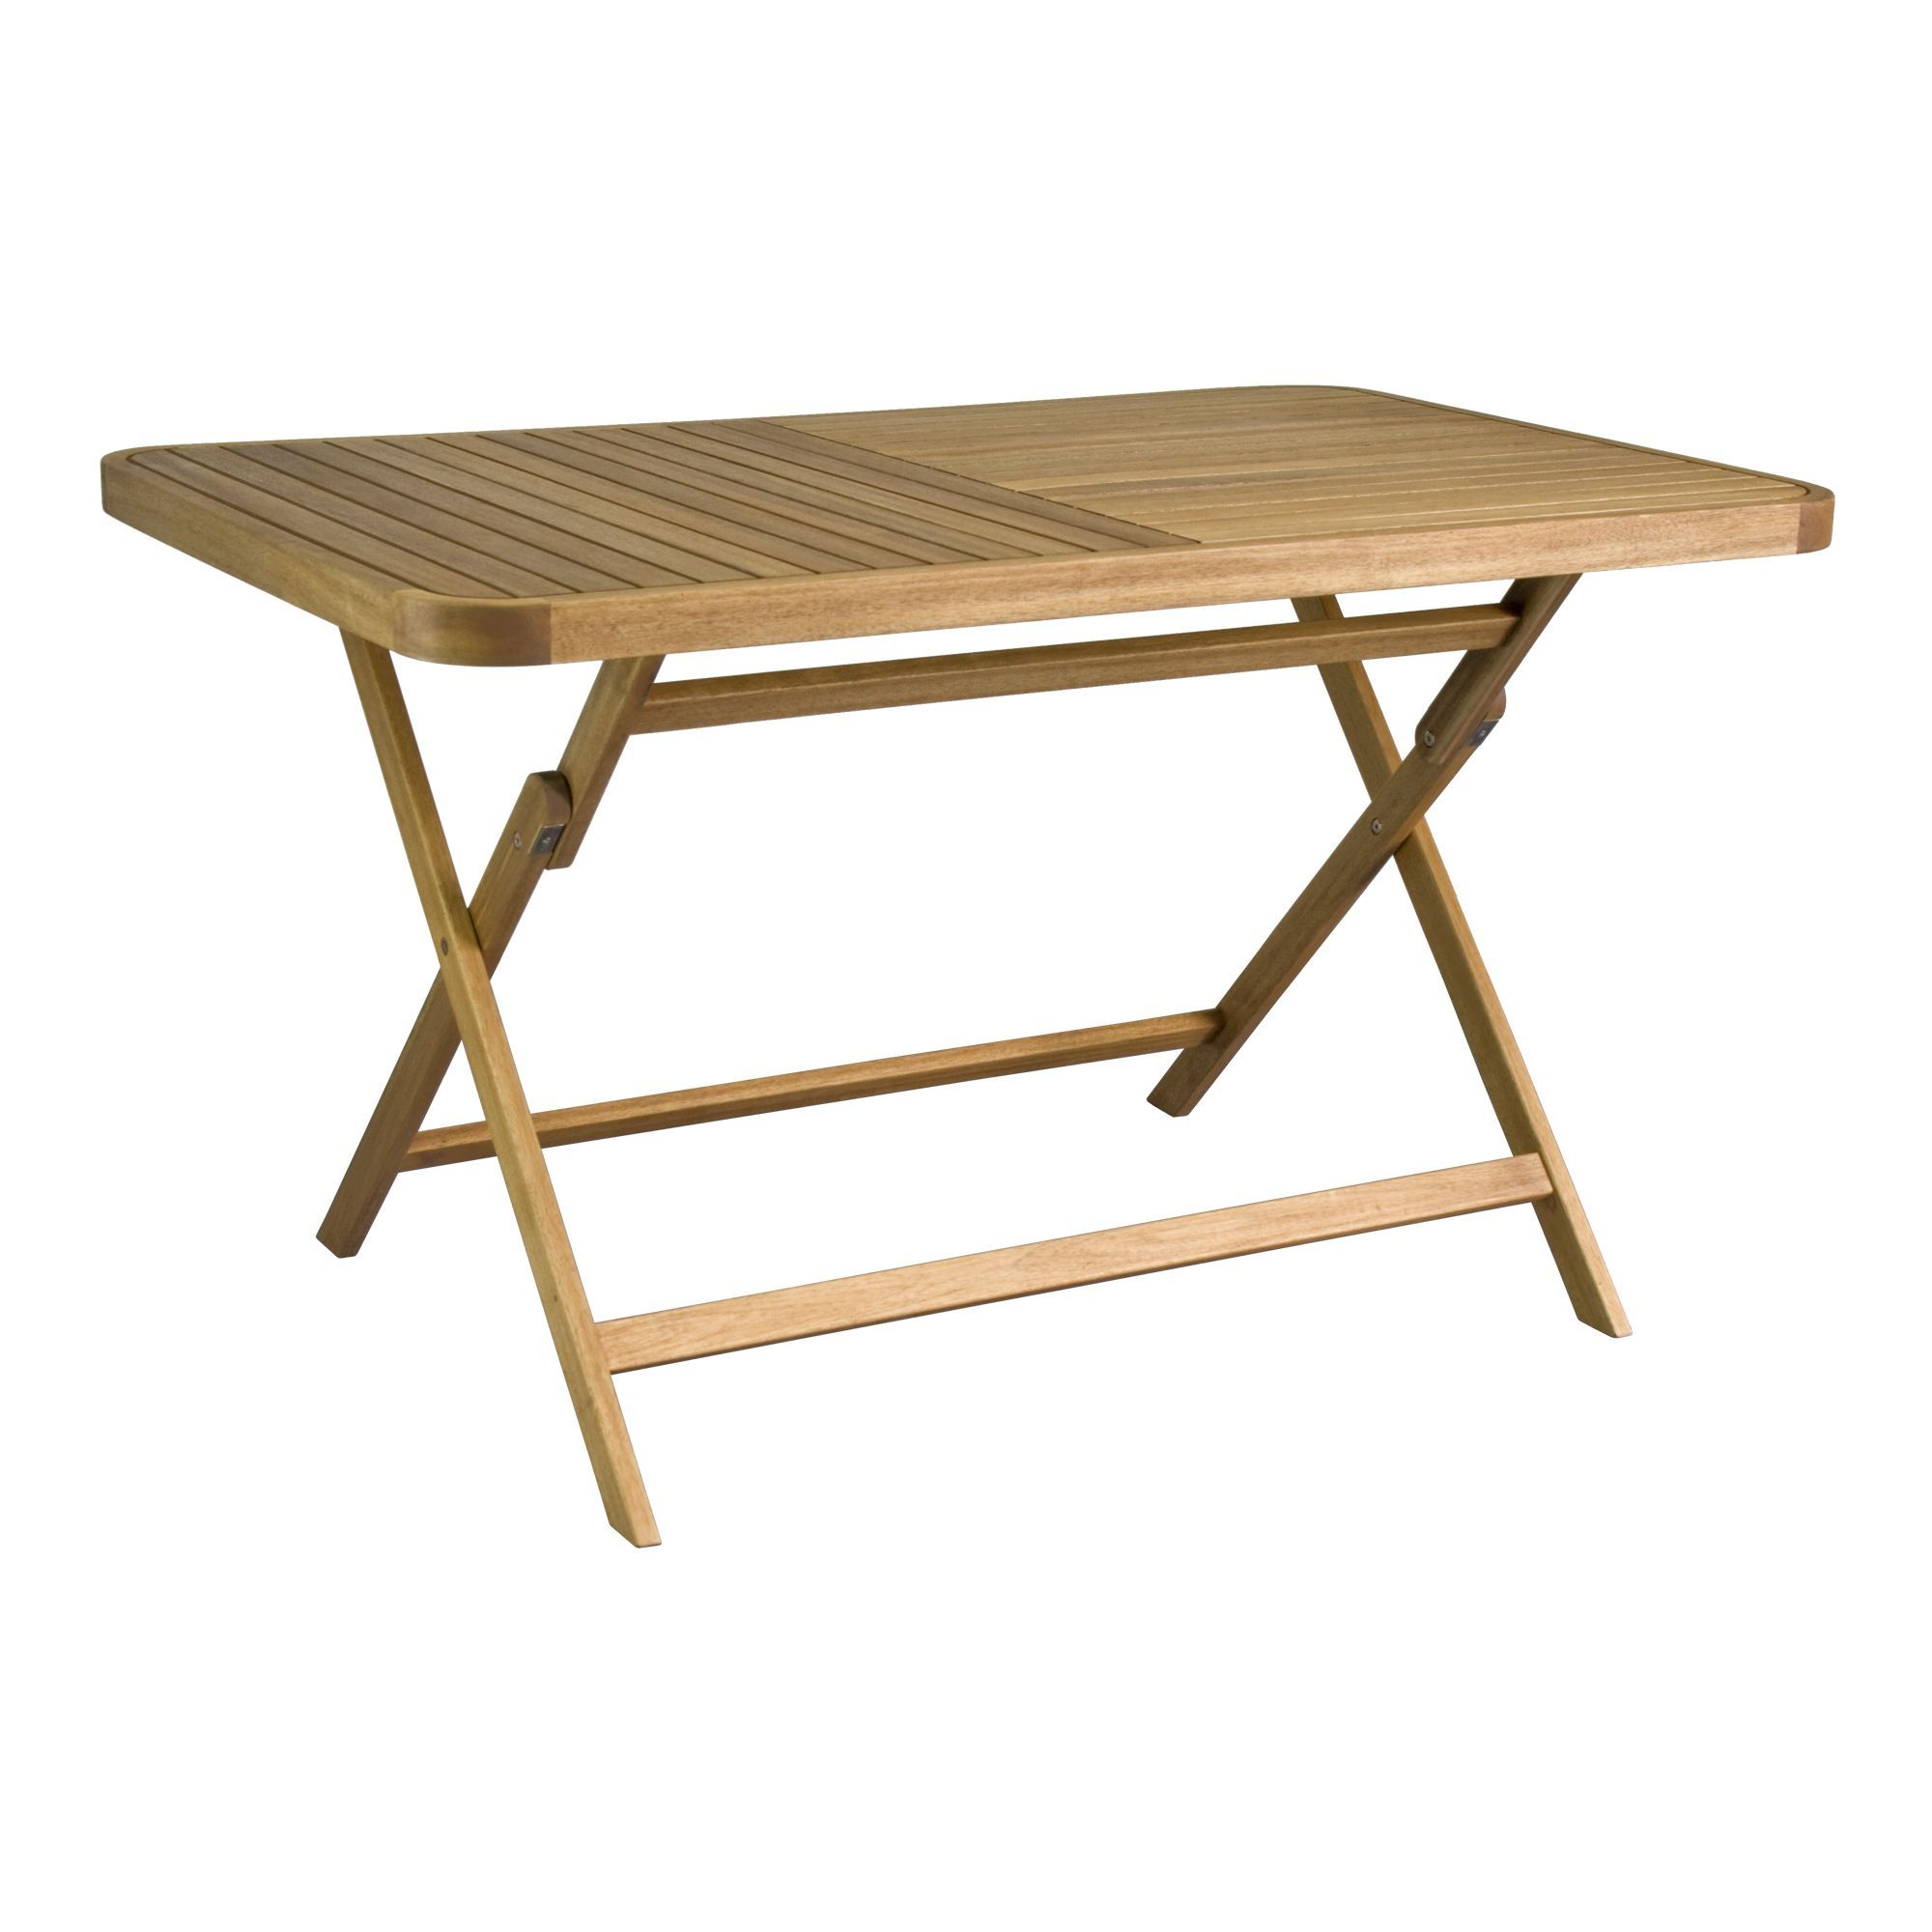 Youk Table de jardin pliante en acacia huilé (2 à 4 places)